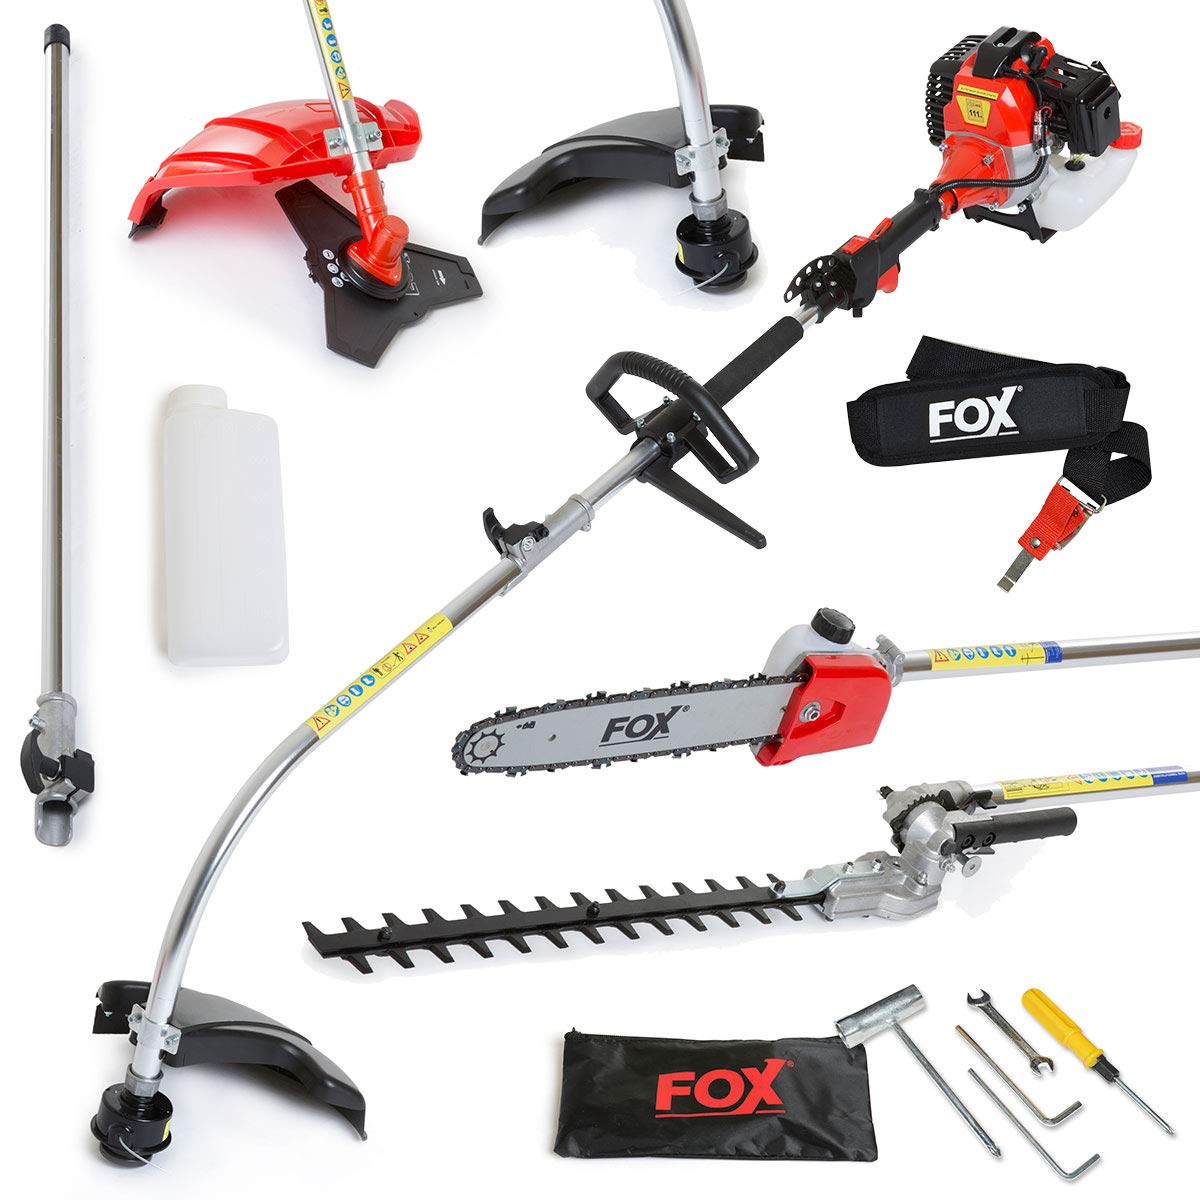 Fox Garden Commander 4 in 1 2-Stroke Heavy Duty 52cc Engine, Petrol Hedge Trimmer, Grass Trimmer, Brush Cutter, Chainsaw, Pruner, Long Reach Multi Function Gardening Tool 2 YEAR WARRANTY